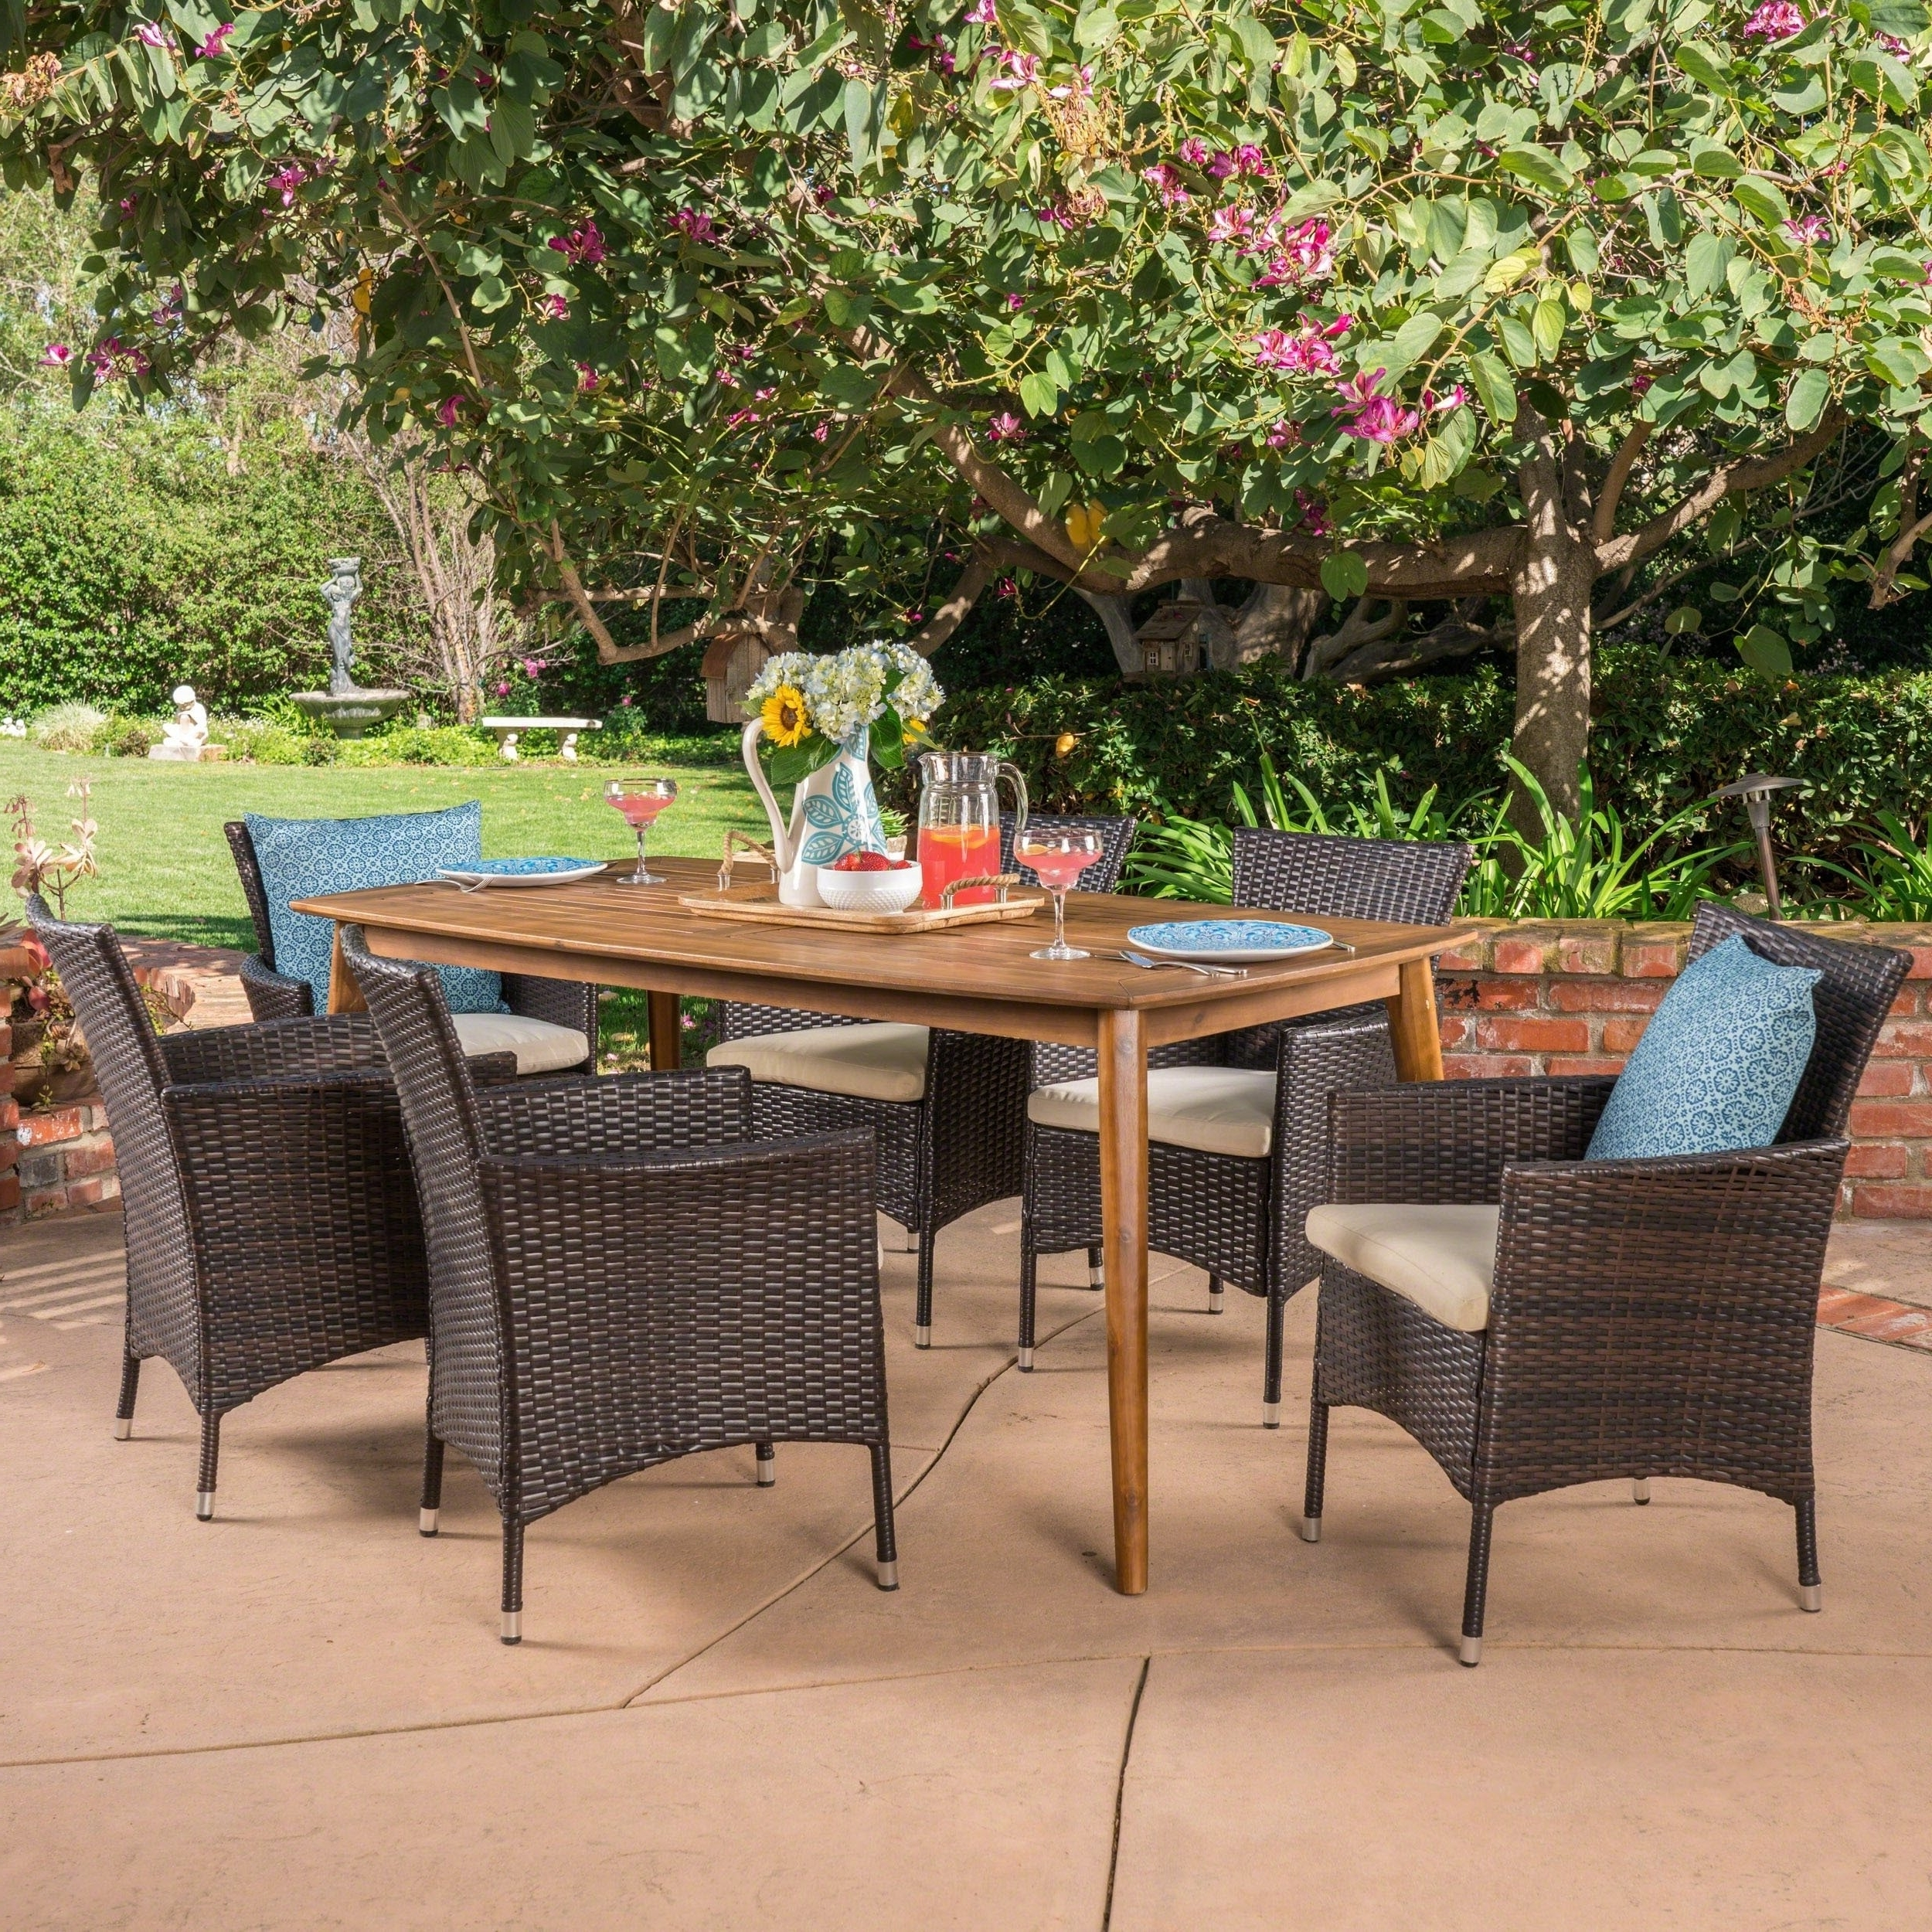 Well Known Jaxon 6 Piece Rectangle Dining Sets With Bench & Wood Chairs With Regard To Shop Jaxon Outdoor 7 Piece Multibrown Pe Wicker Dining Set With (View 5 of 25)